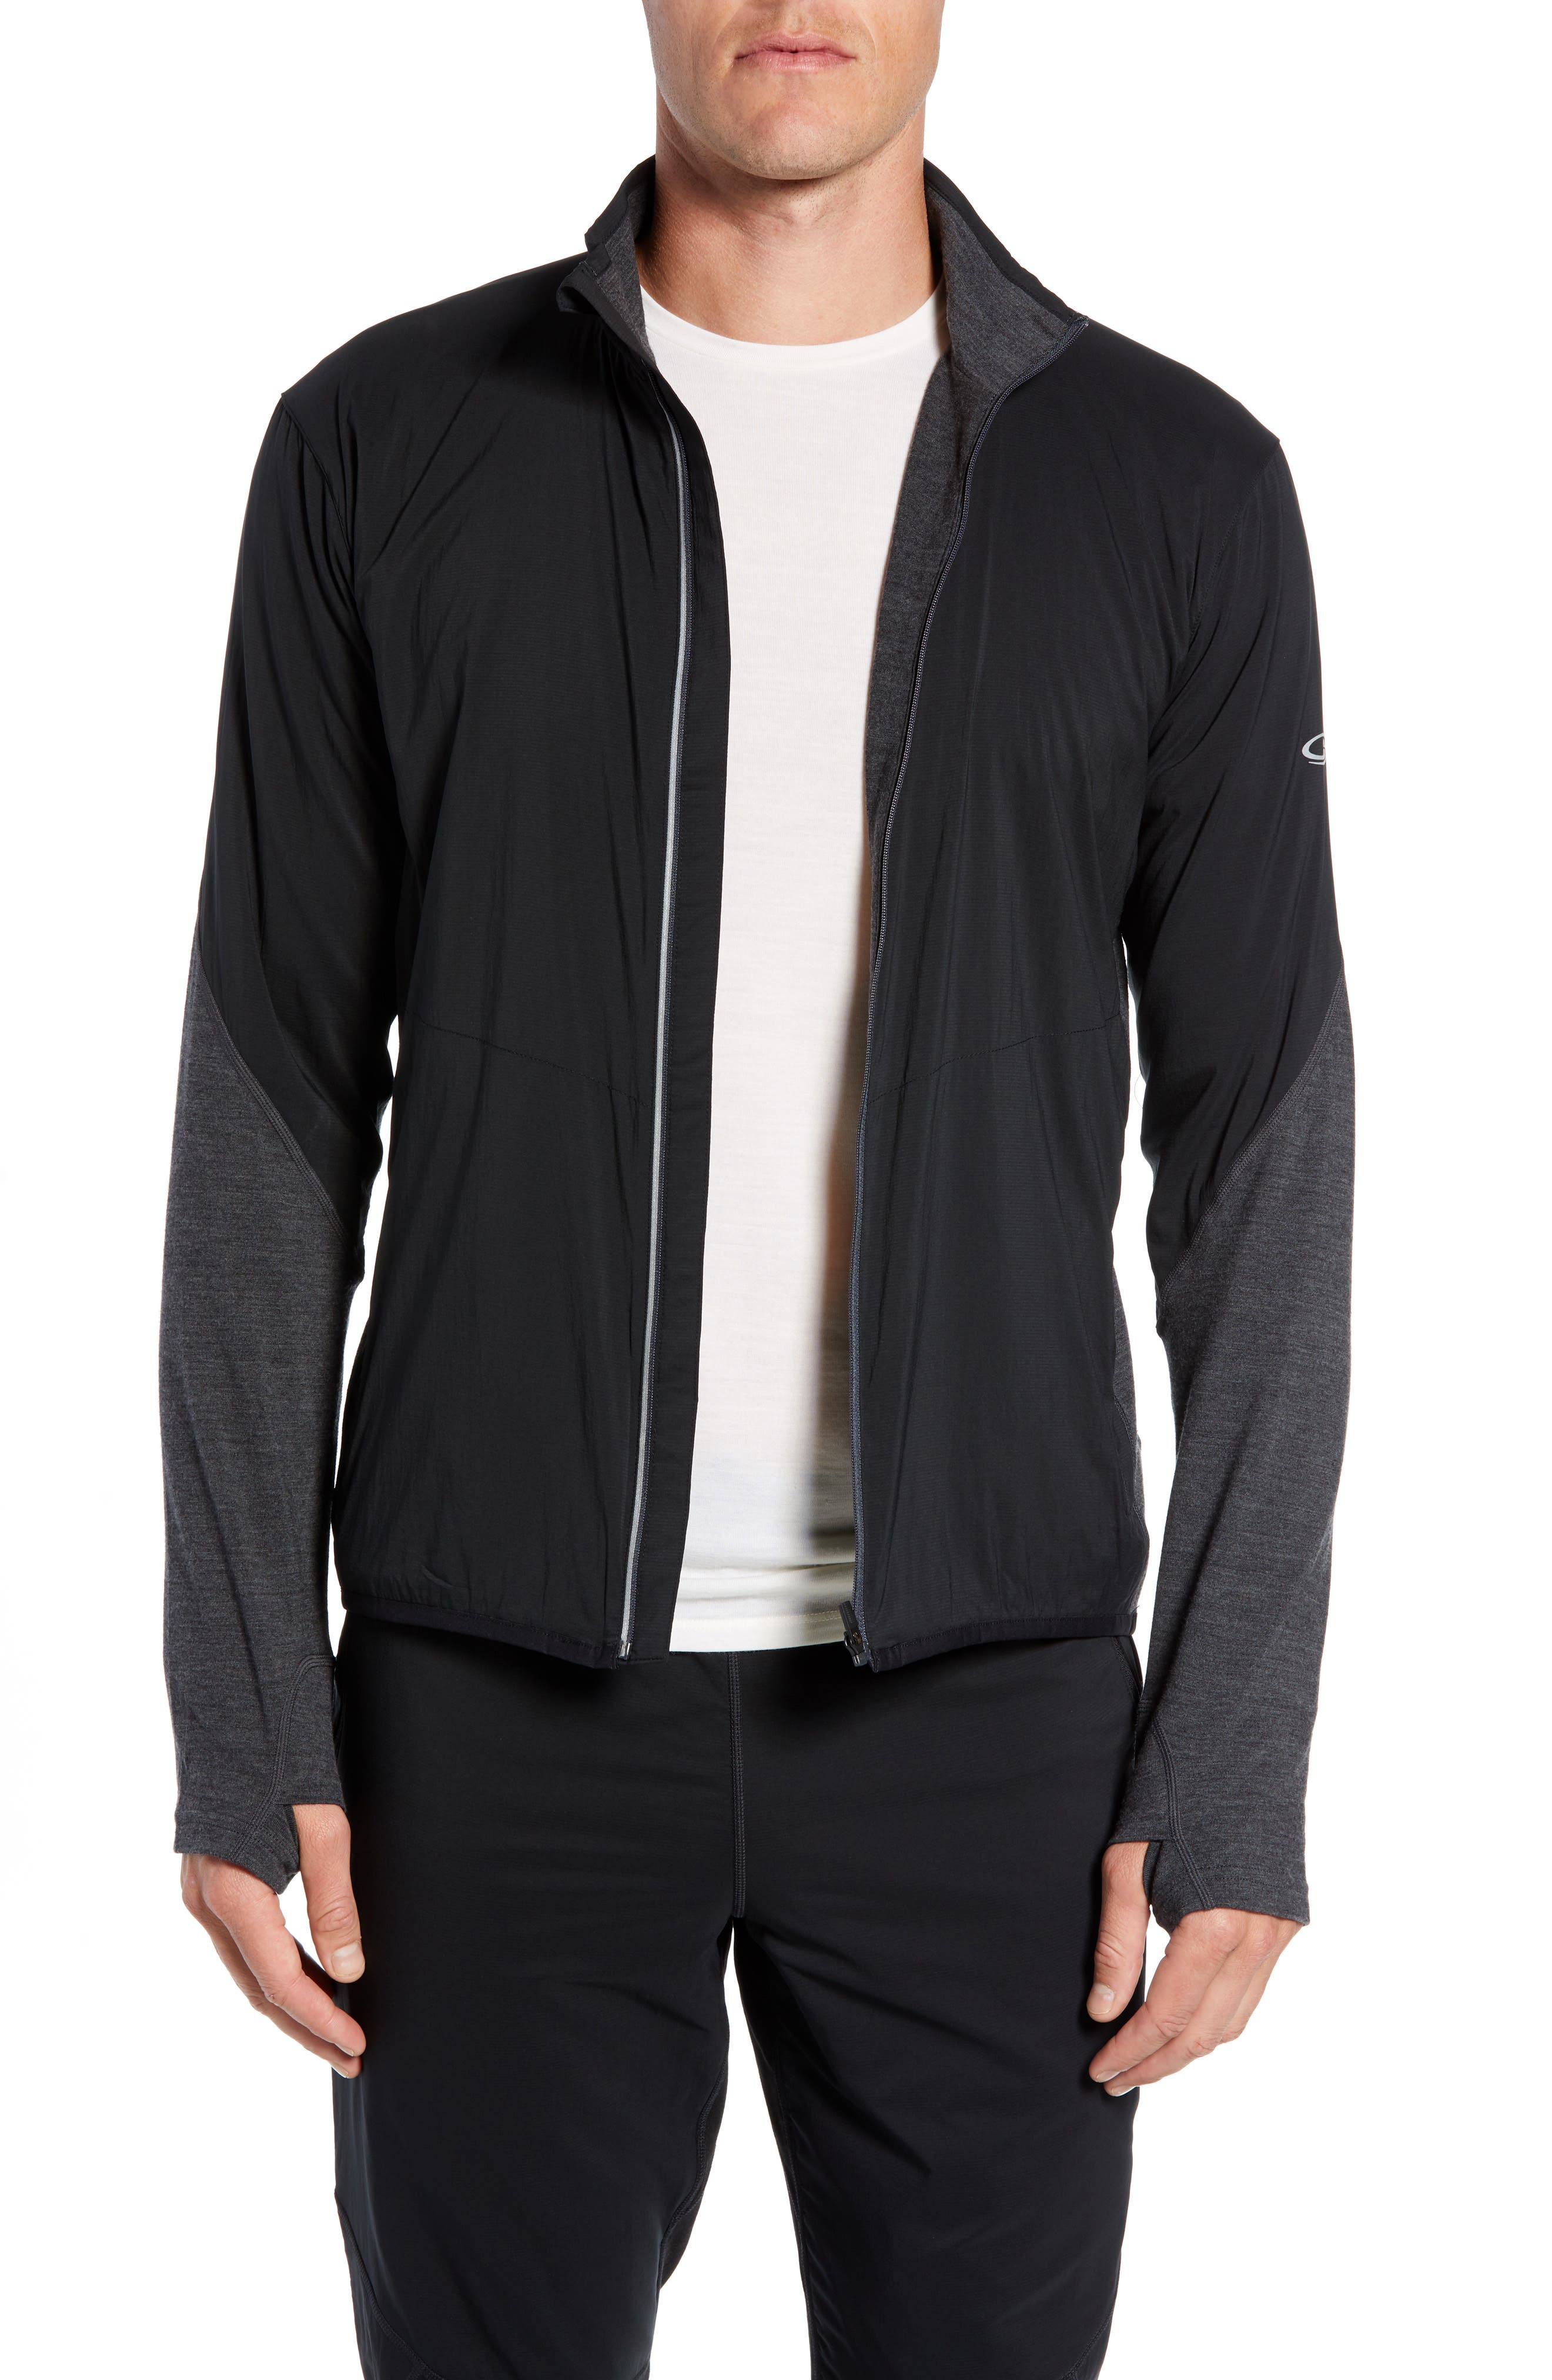 Tech Trainer Hybrid Jacket,                             Main thumbnail 1, color,                             BLACK